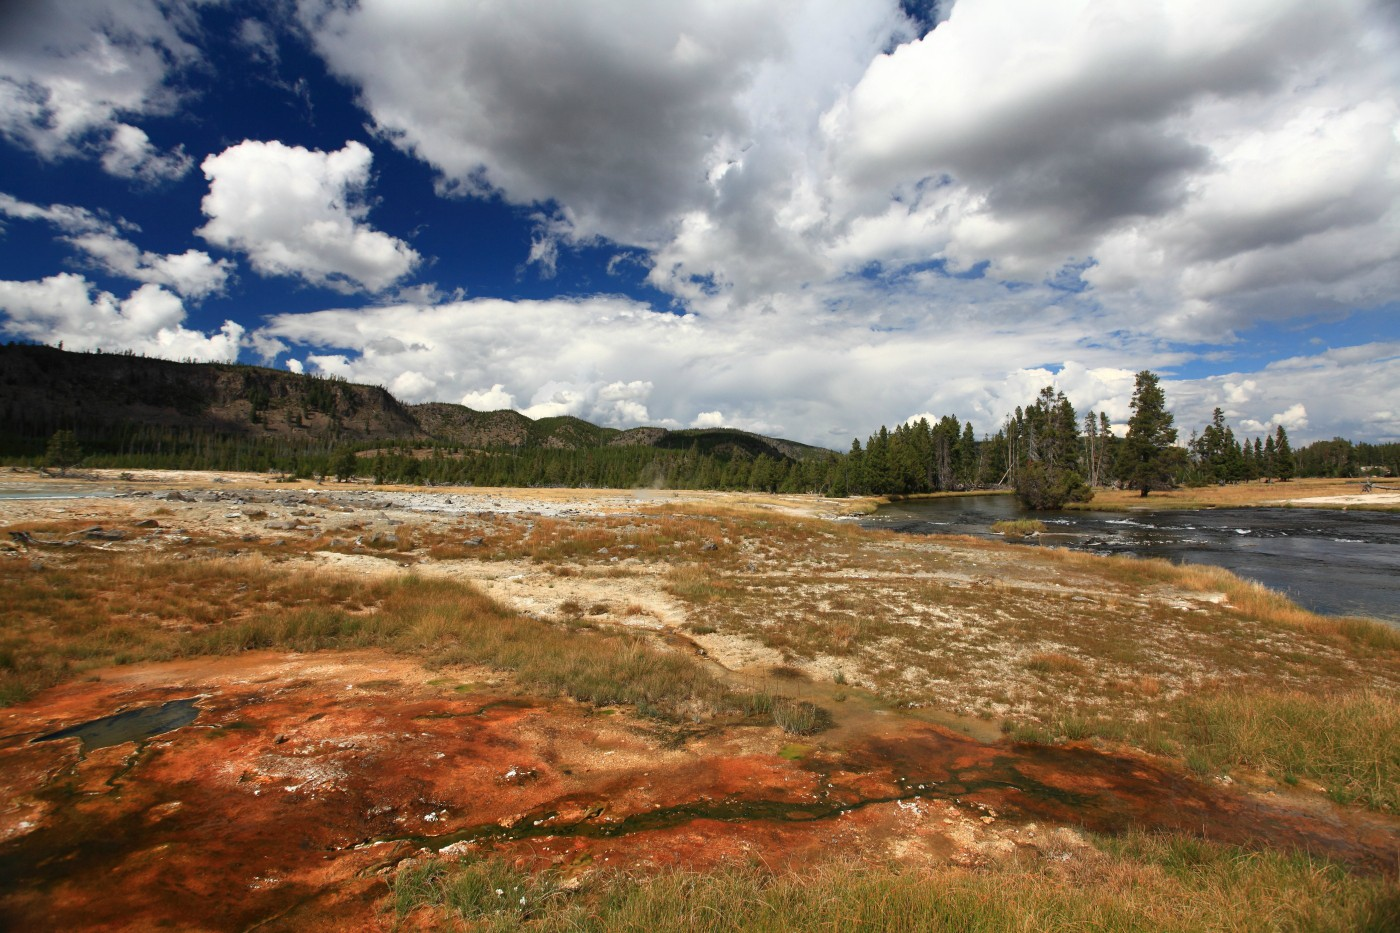 yellowstone national park author szulecki joshua